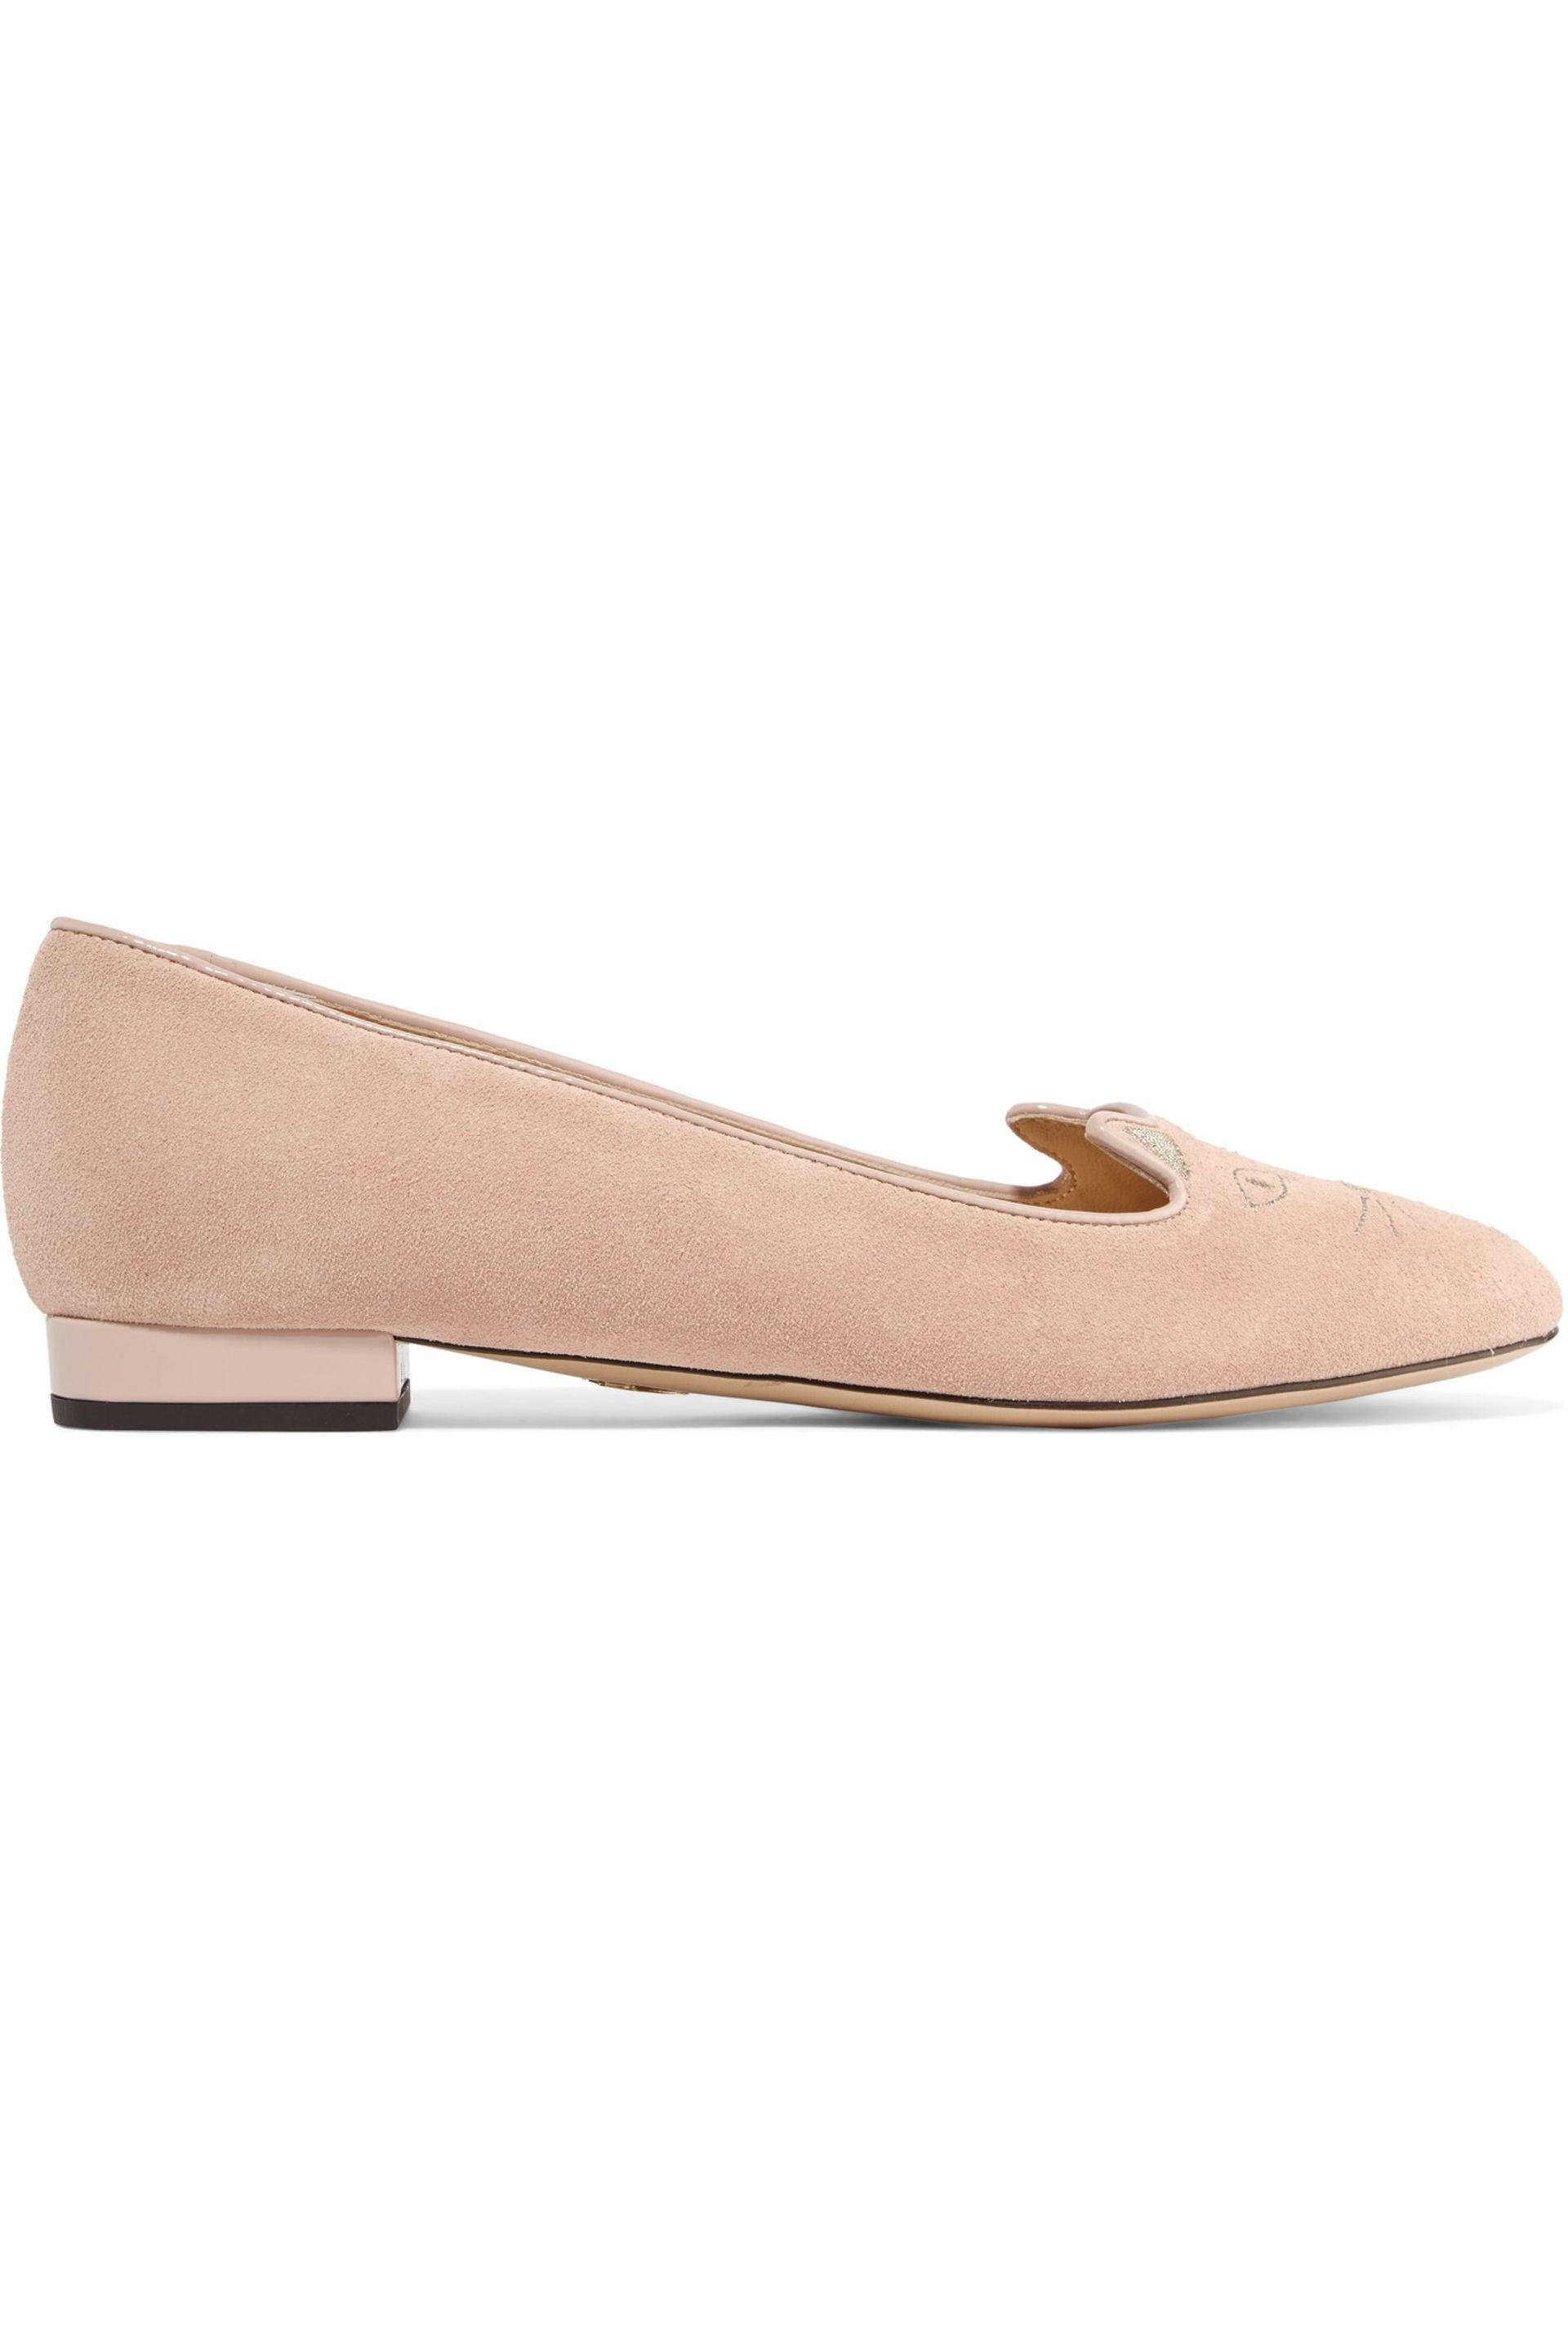 Charlotte Olympia Suede Ballet Flats